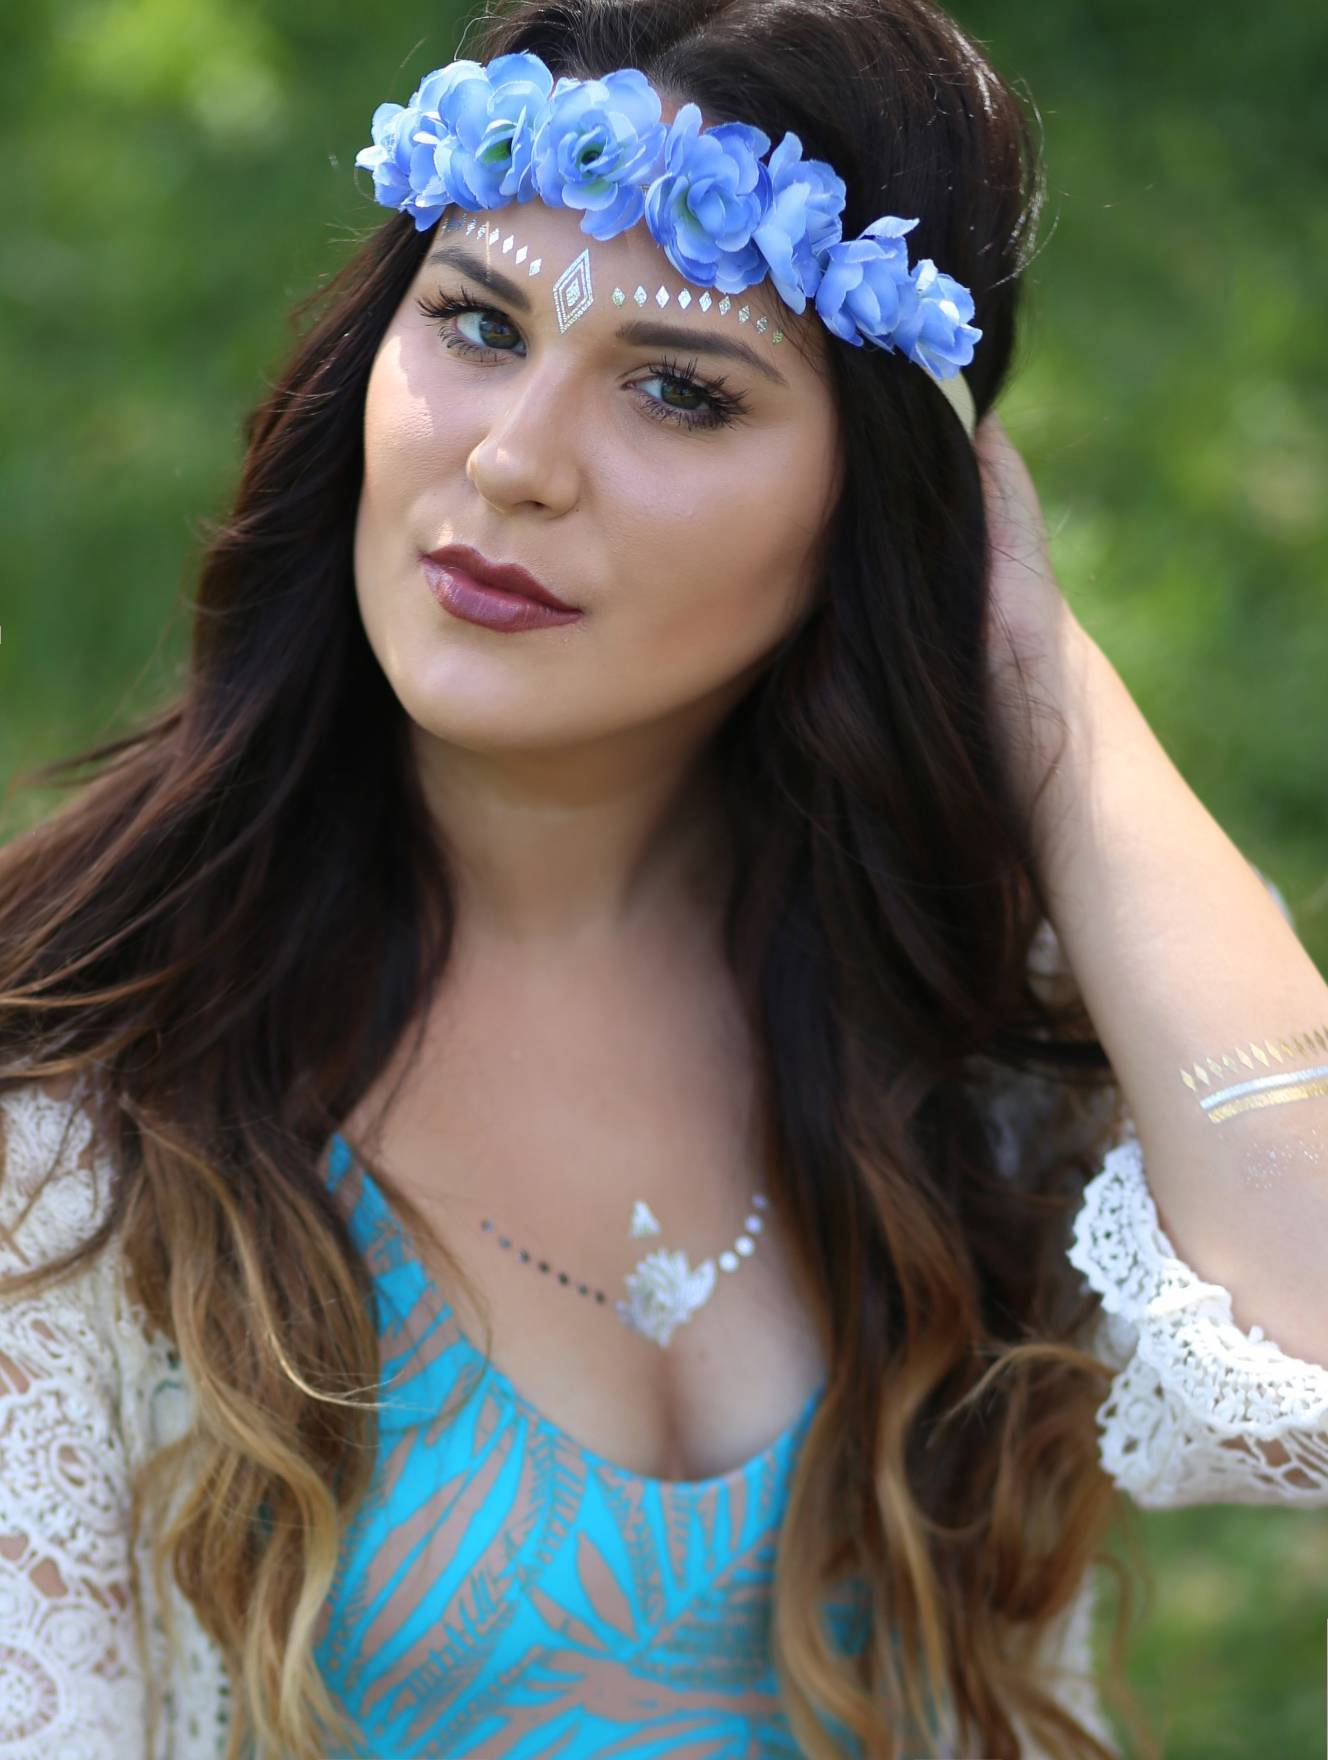 how to wear and style flash tattoos   festival outfit ideas   Target   Target fashion   beauty blogger Mash Elle   boho style   festival outfits   festival style coachella outfit ideas